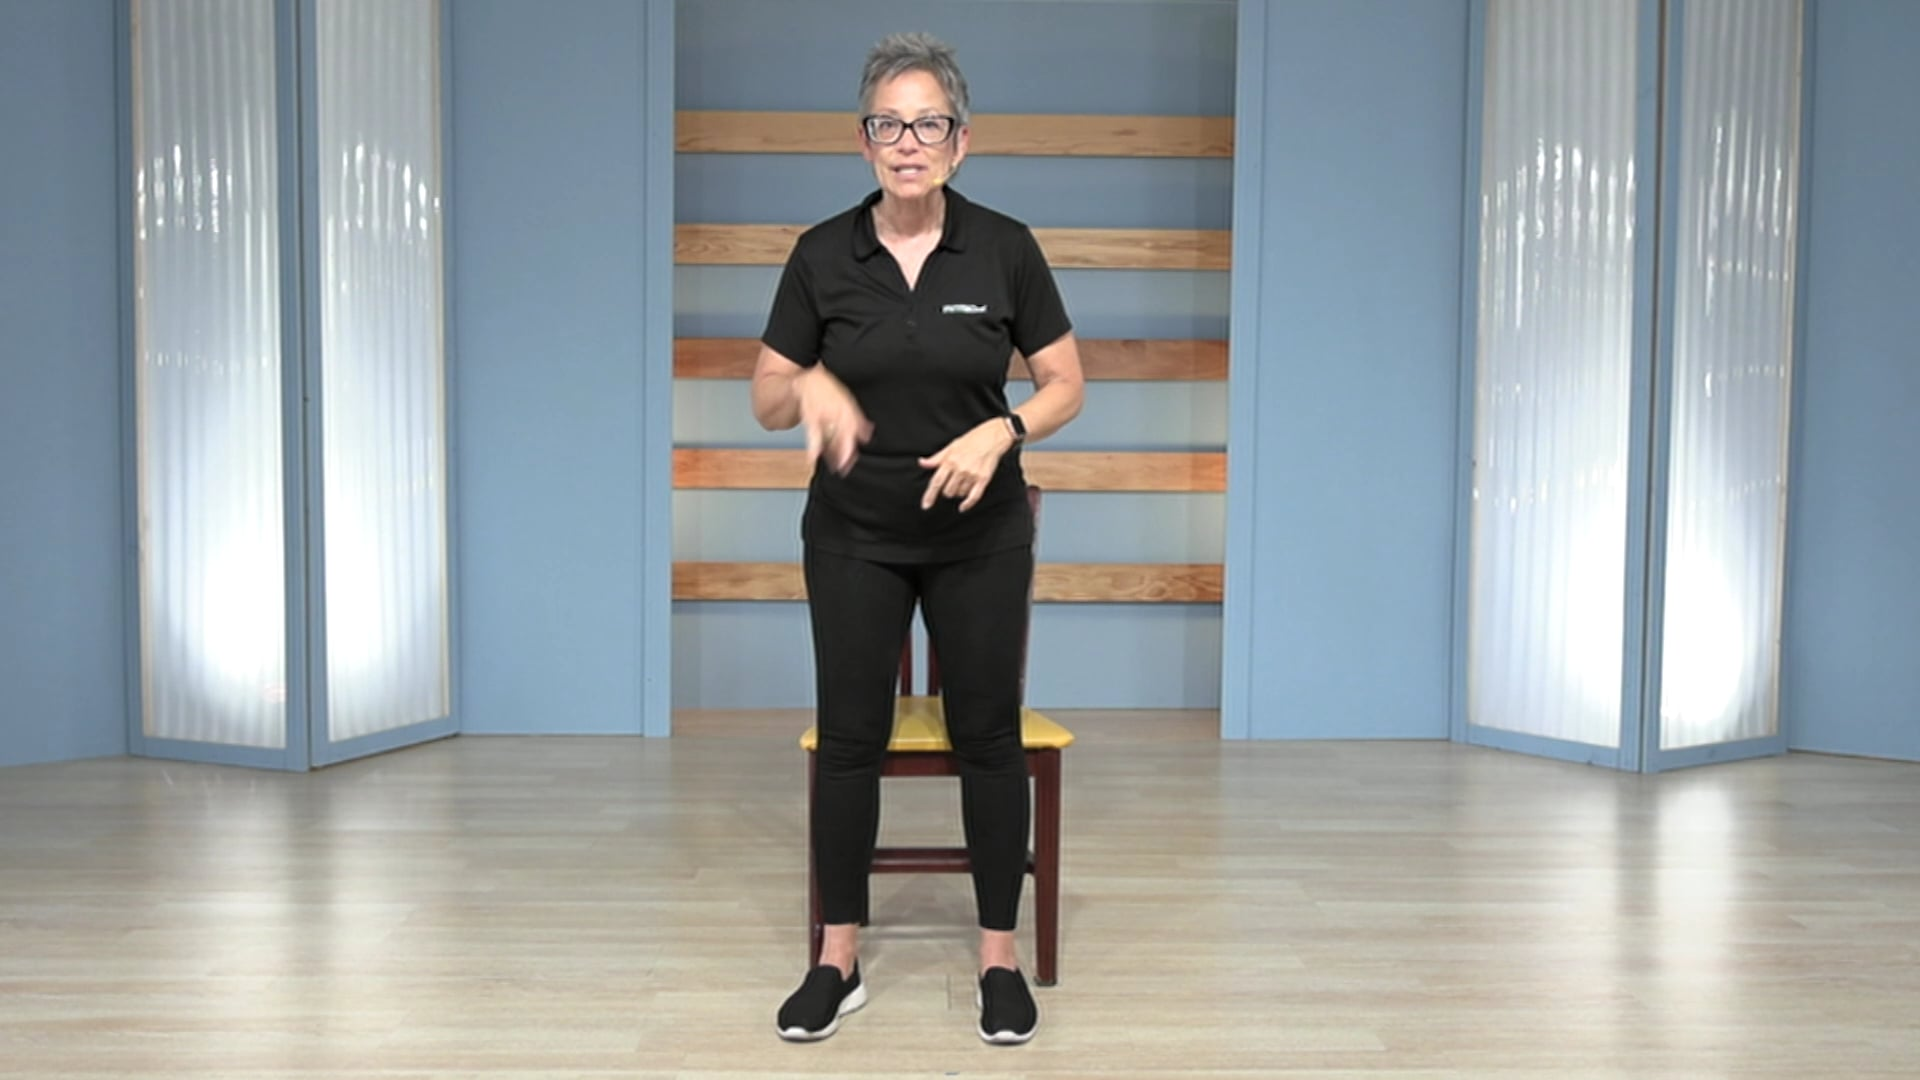 Chair Fitness 10-Minute Leg Workout